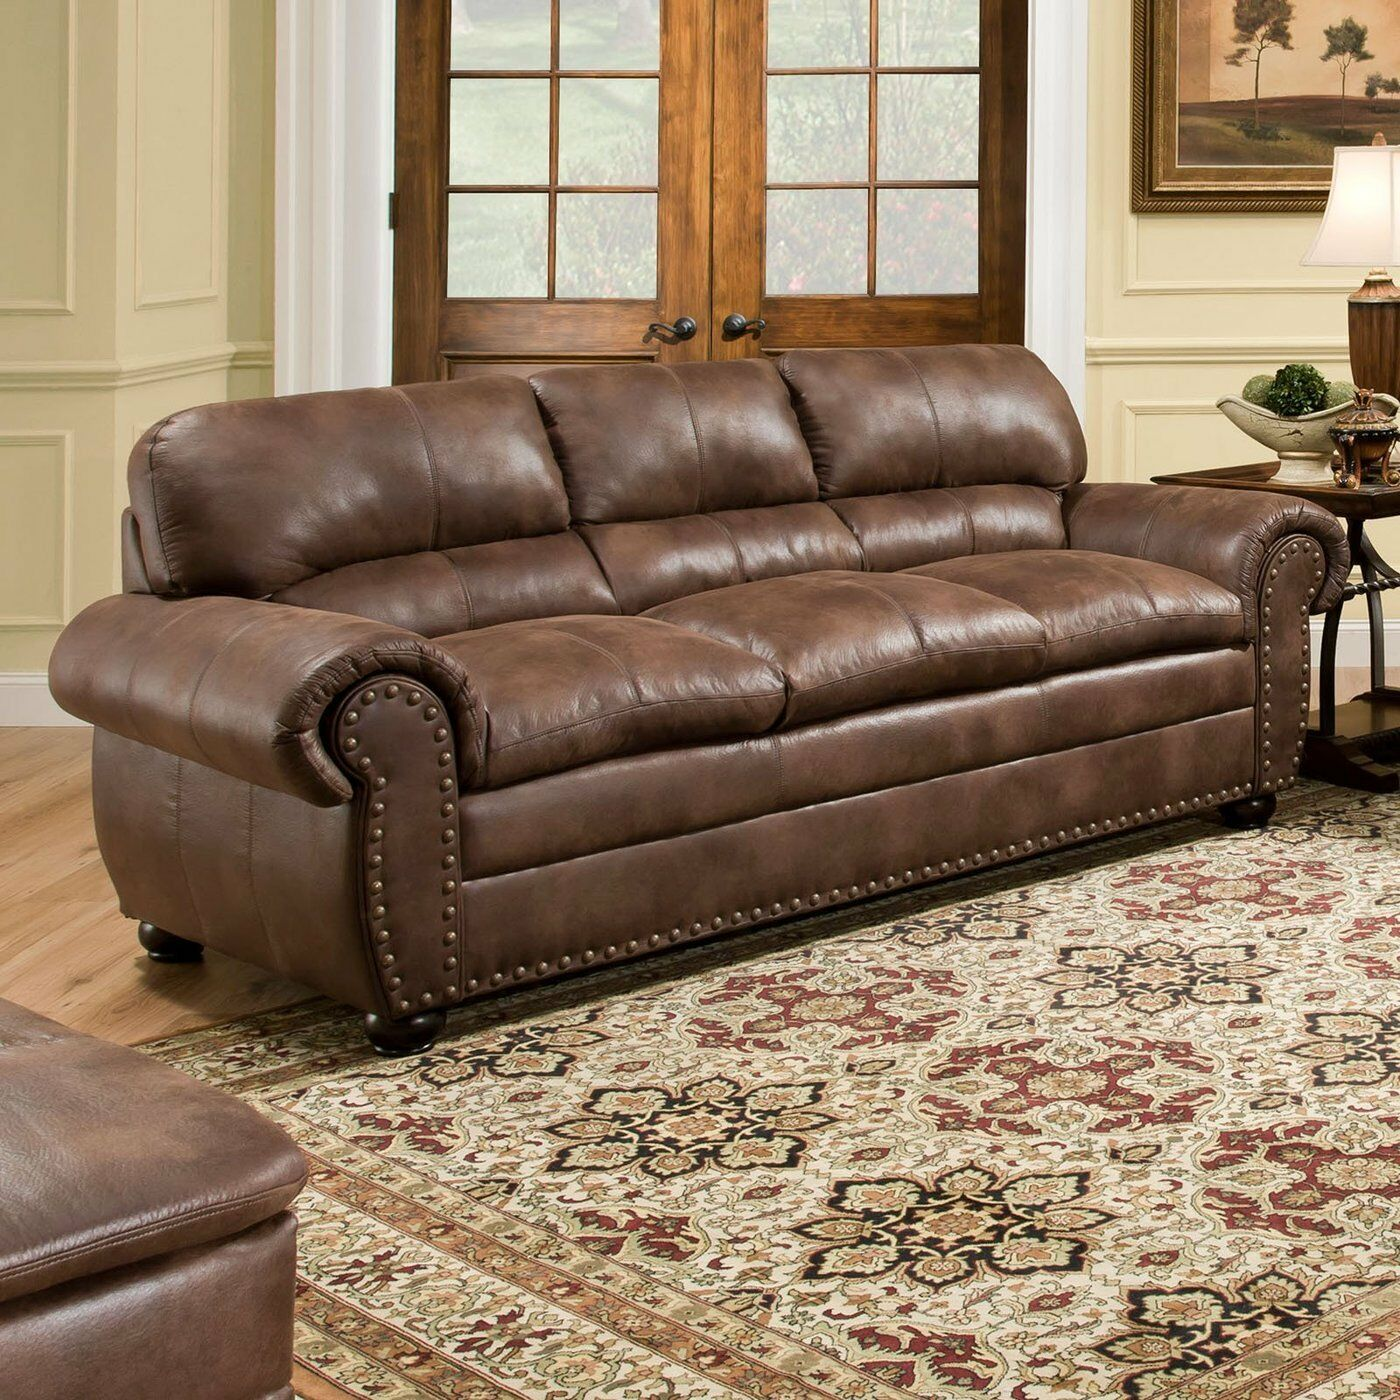 Brown Leather Sofa Modern Couch Loveseat Contemporary Faux Furniture Nailhead